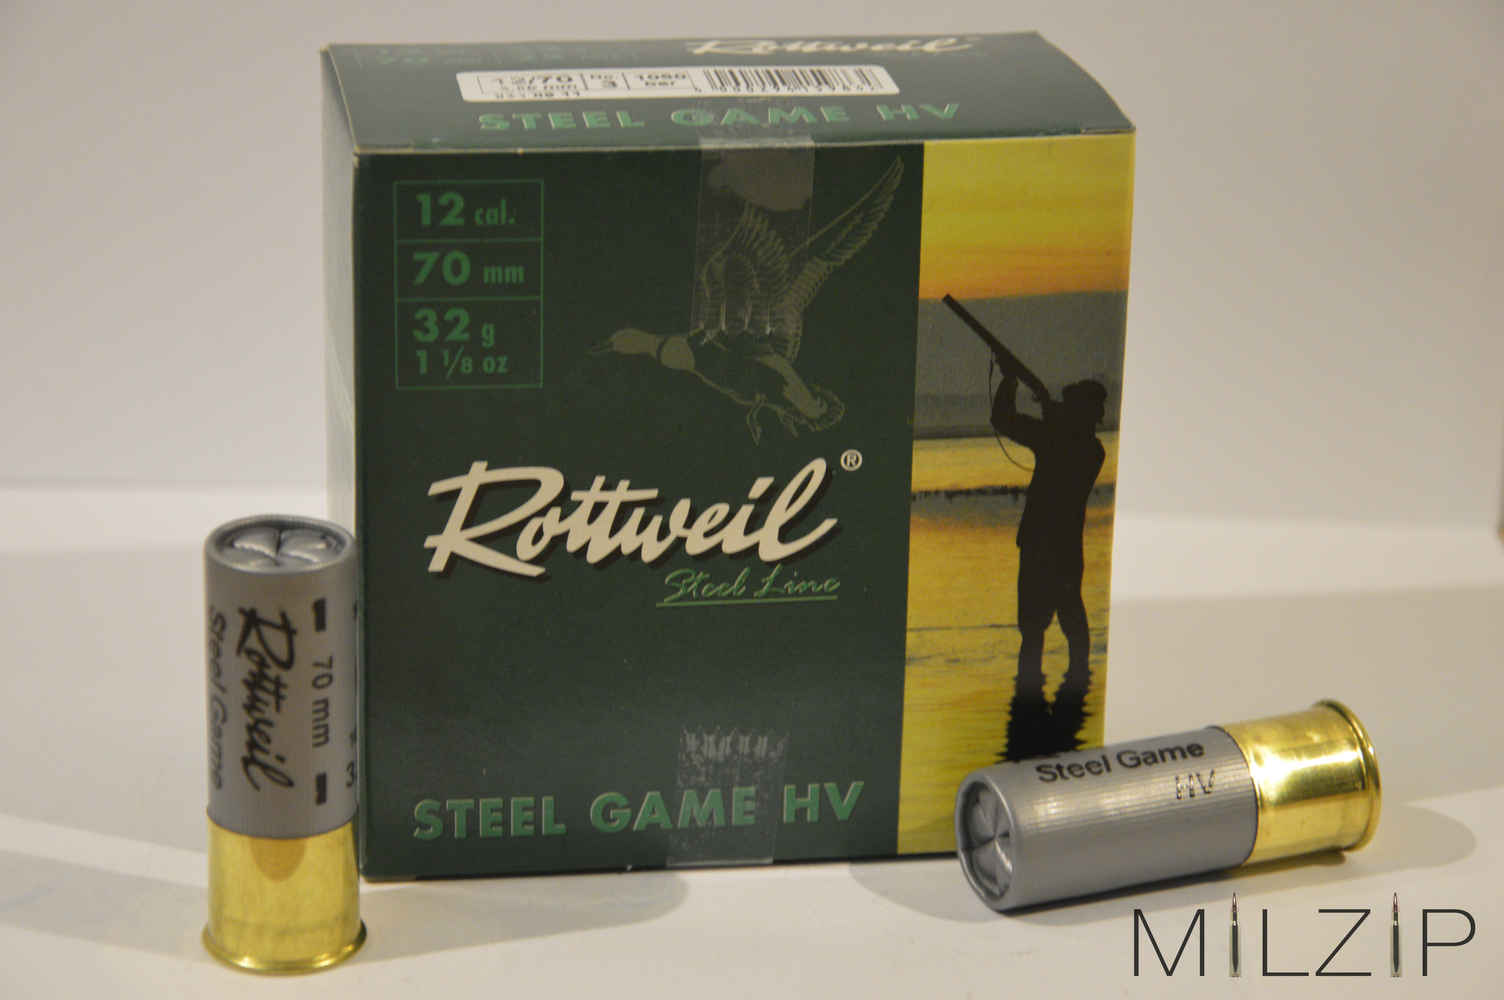 Rottweil Steel Game HV 12/70 3,5mm 32g